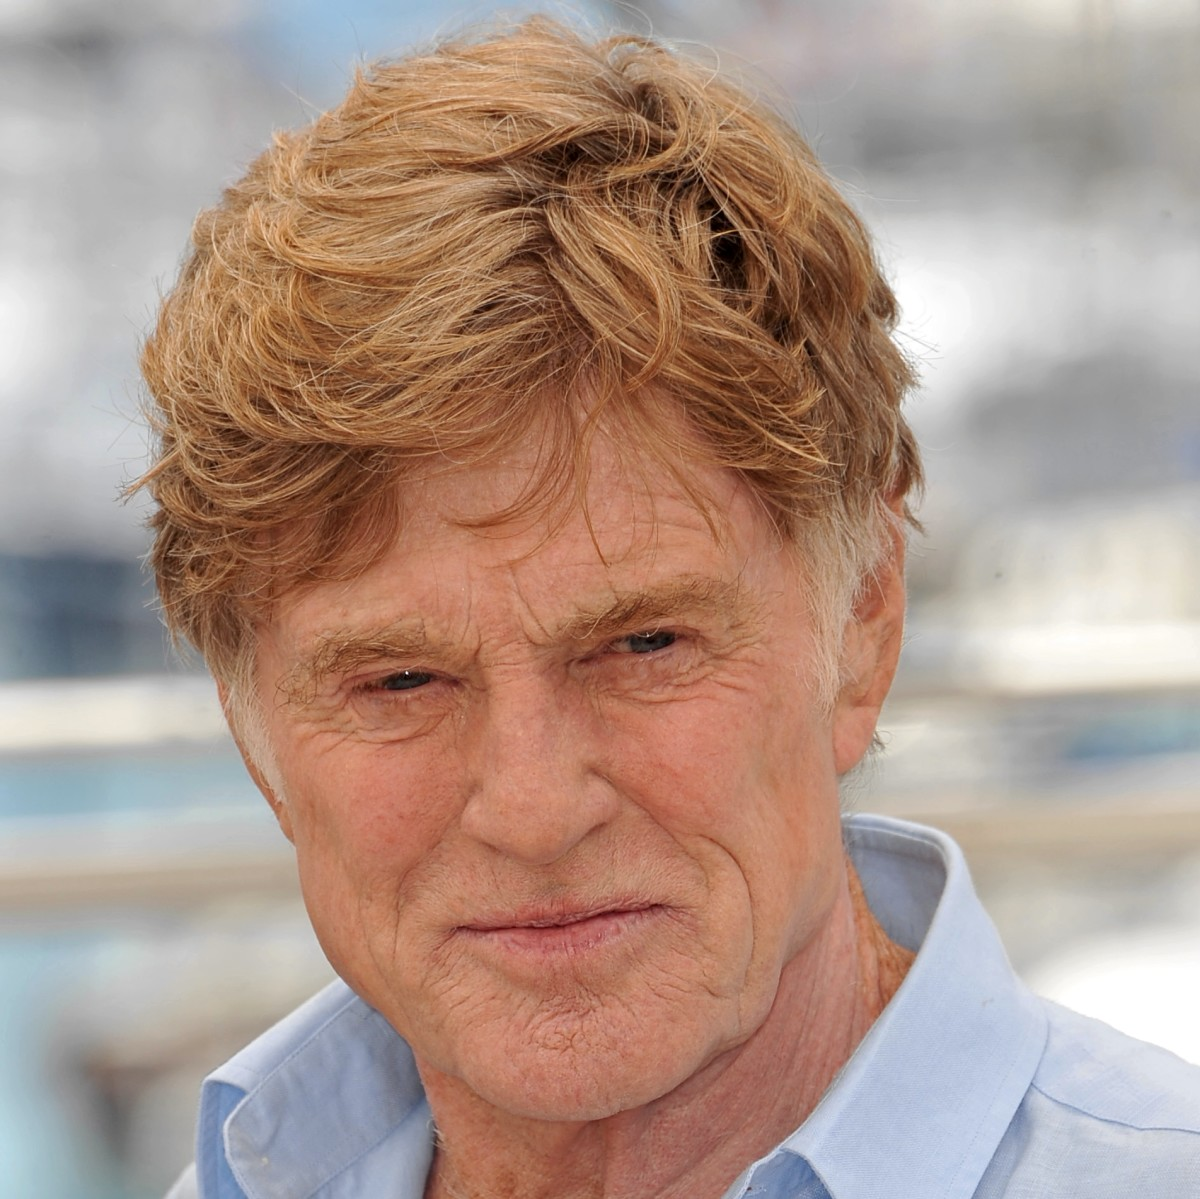 Fabuleux Robert Redford - Film Actor, Television Actor, Director  YW85